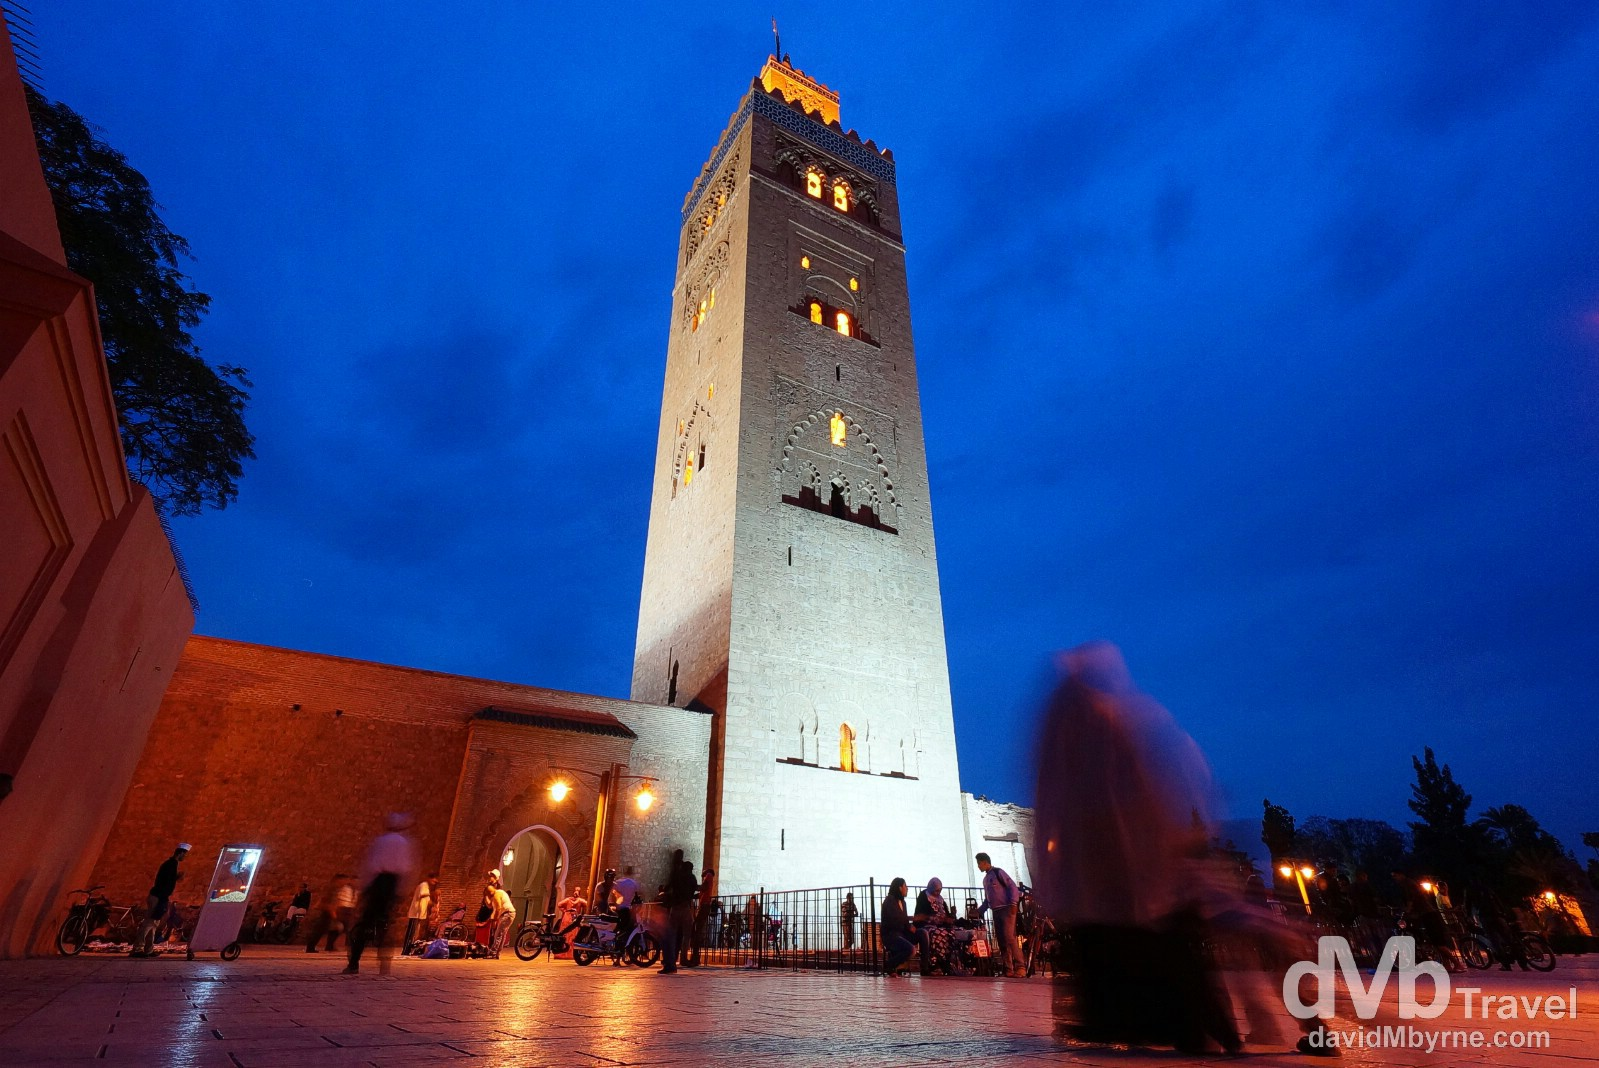 Outside the Koutoubia Mosque shortly after dusk in Marrakesh, Morocco. May 6th, 2014.